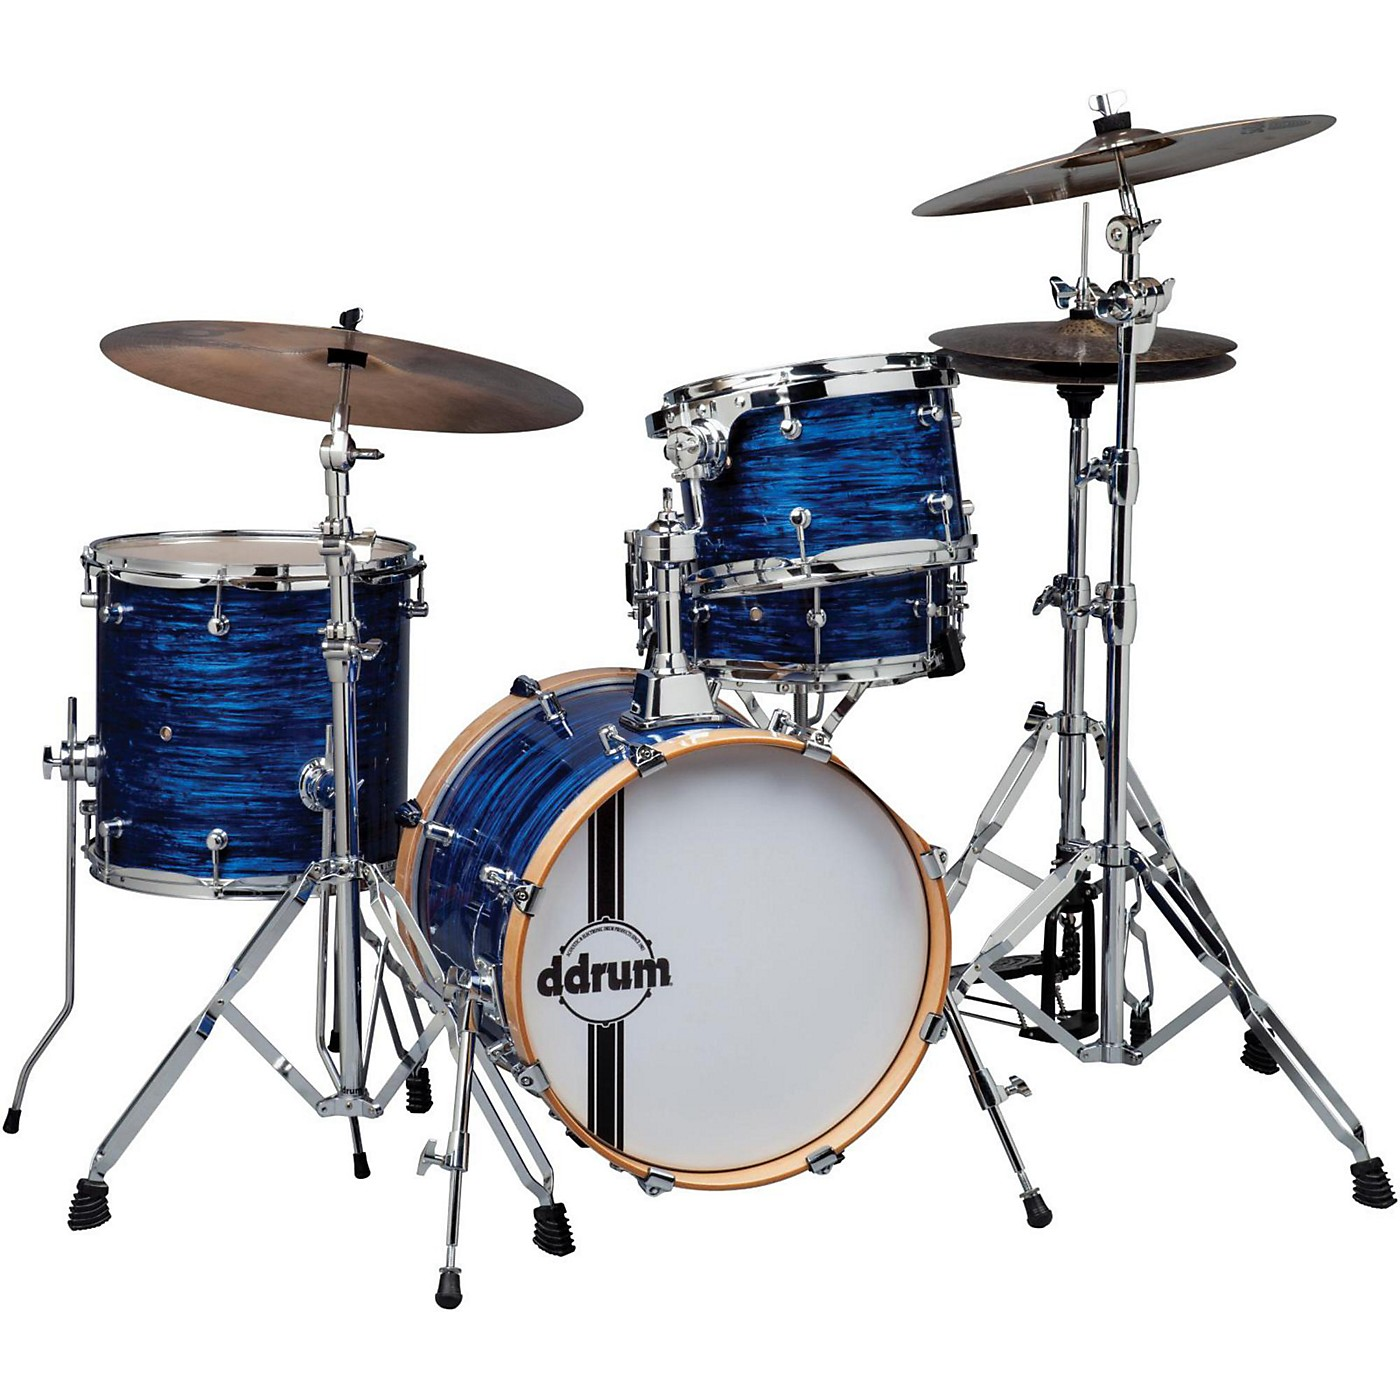 ddrum Speak Easy Flyer Compact 4-Piece Shell Pack thumbnail